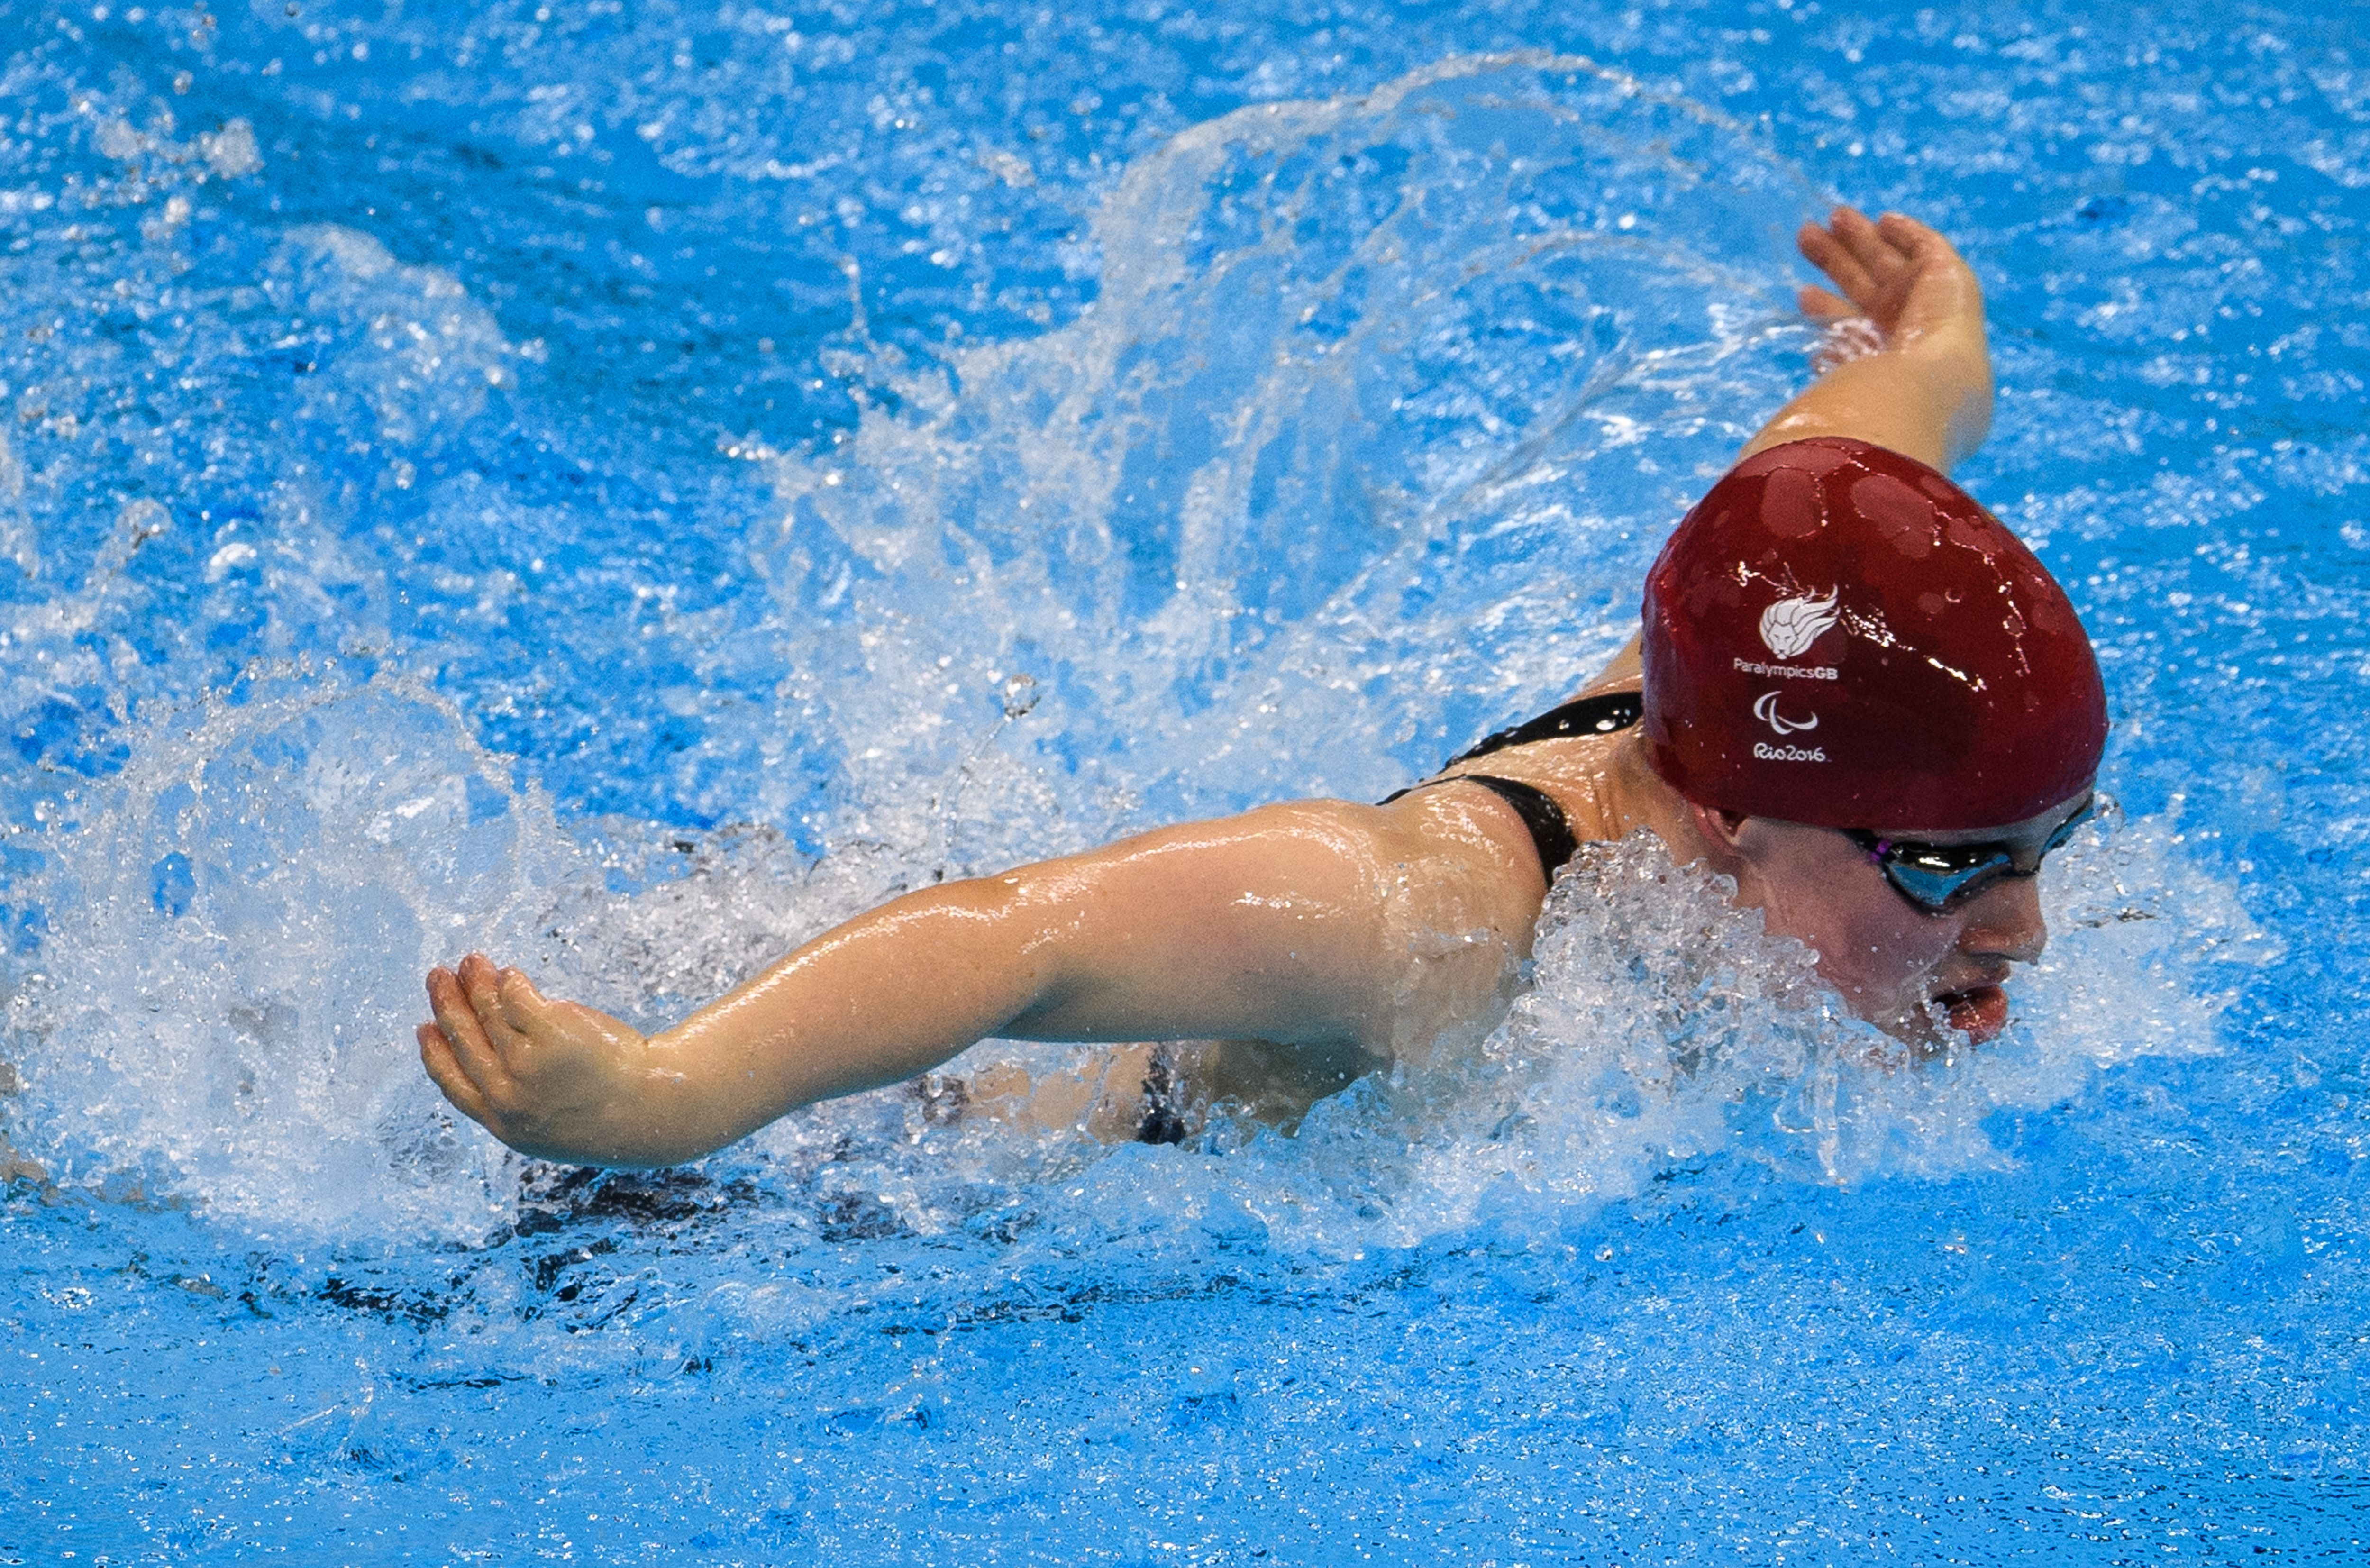 15-year-old Ellie Robinson wins gold for Team GB on Paralympic debut in the 50metres butterfly